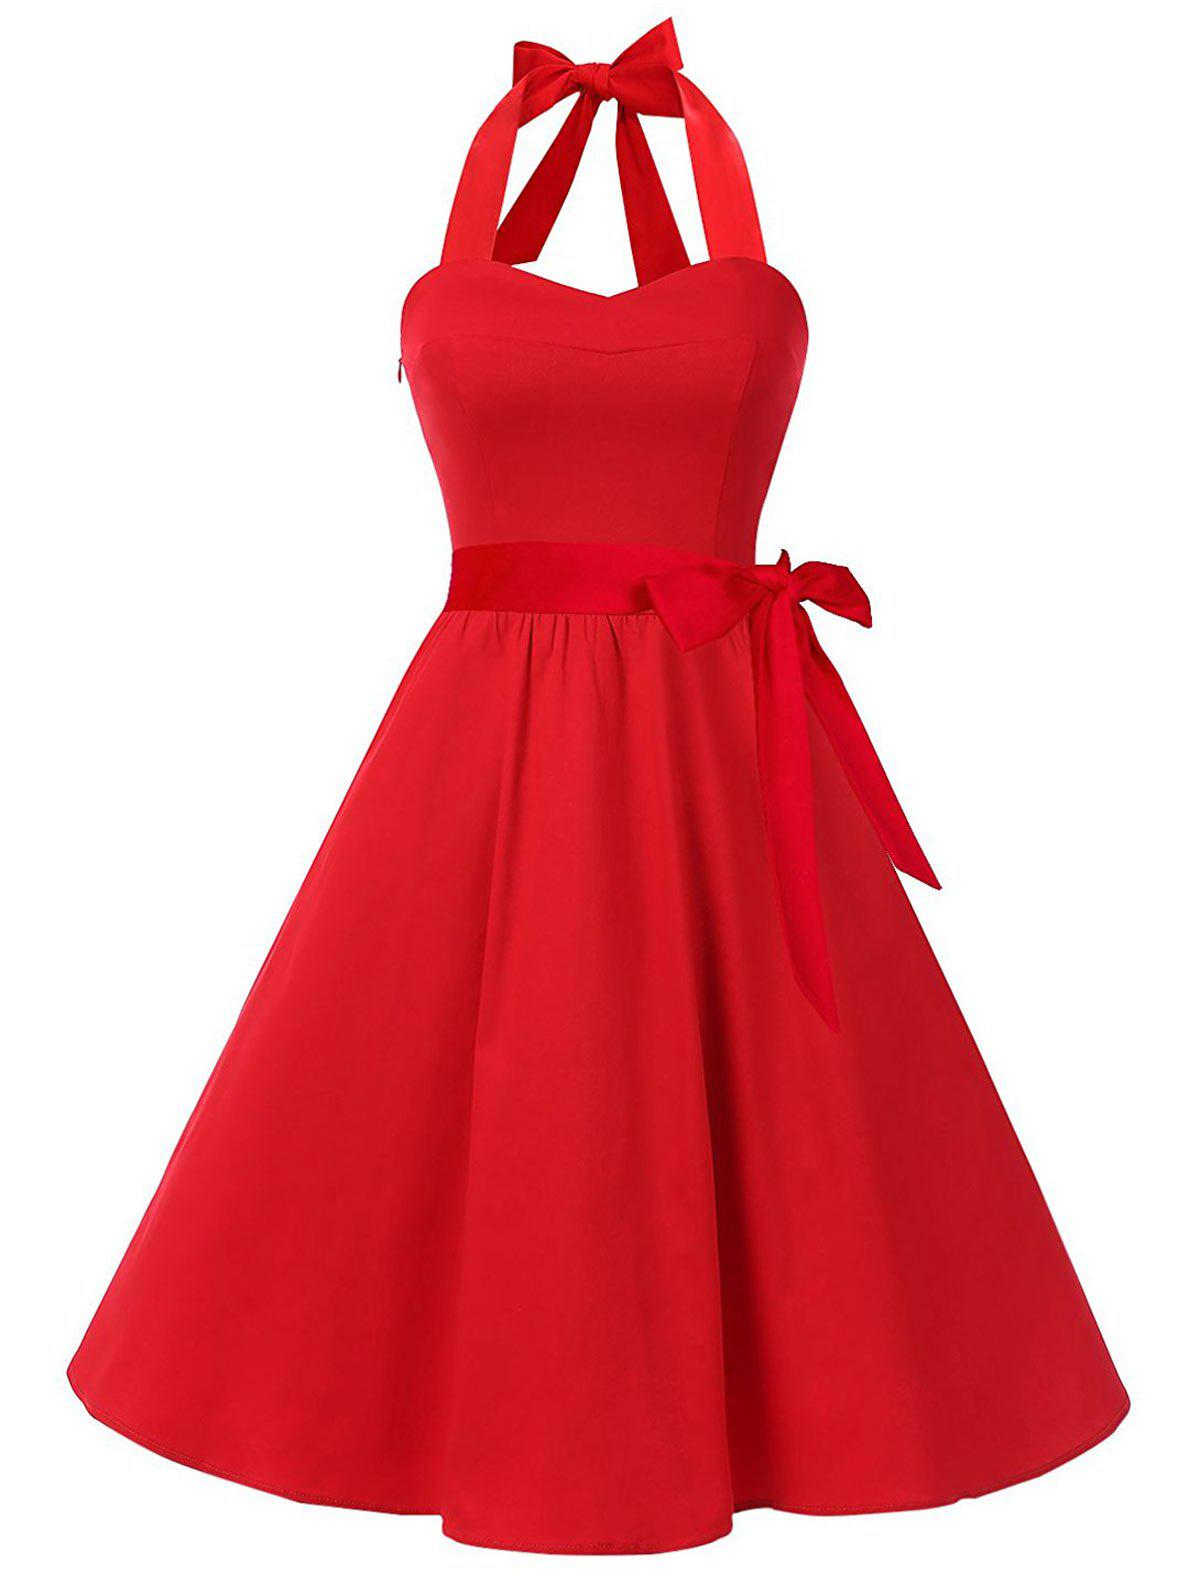 Vintage Halter Lace Up Backless Skater Dress - RED M